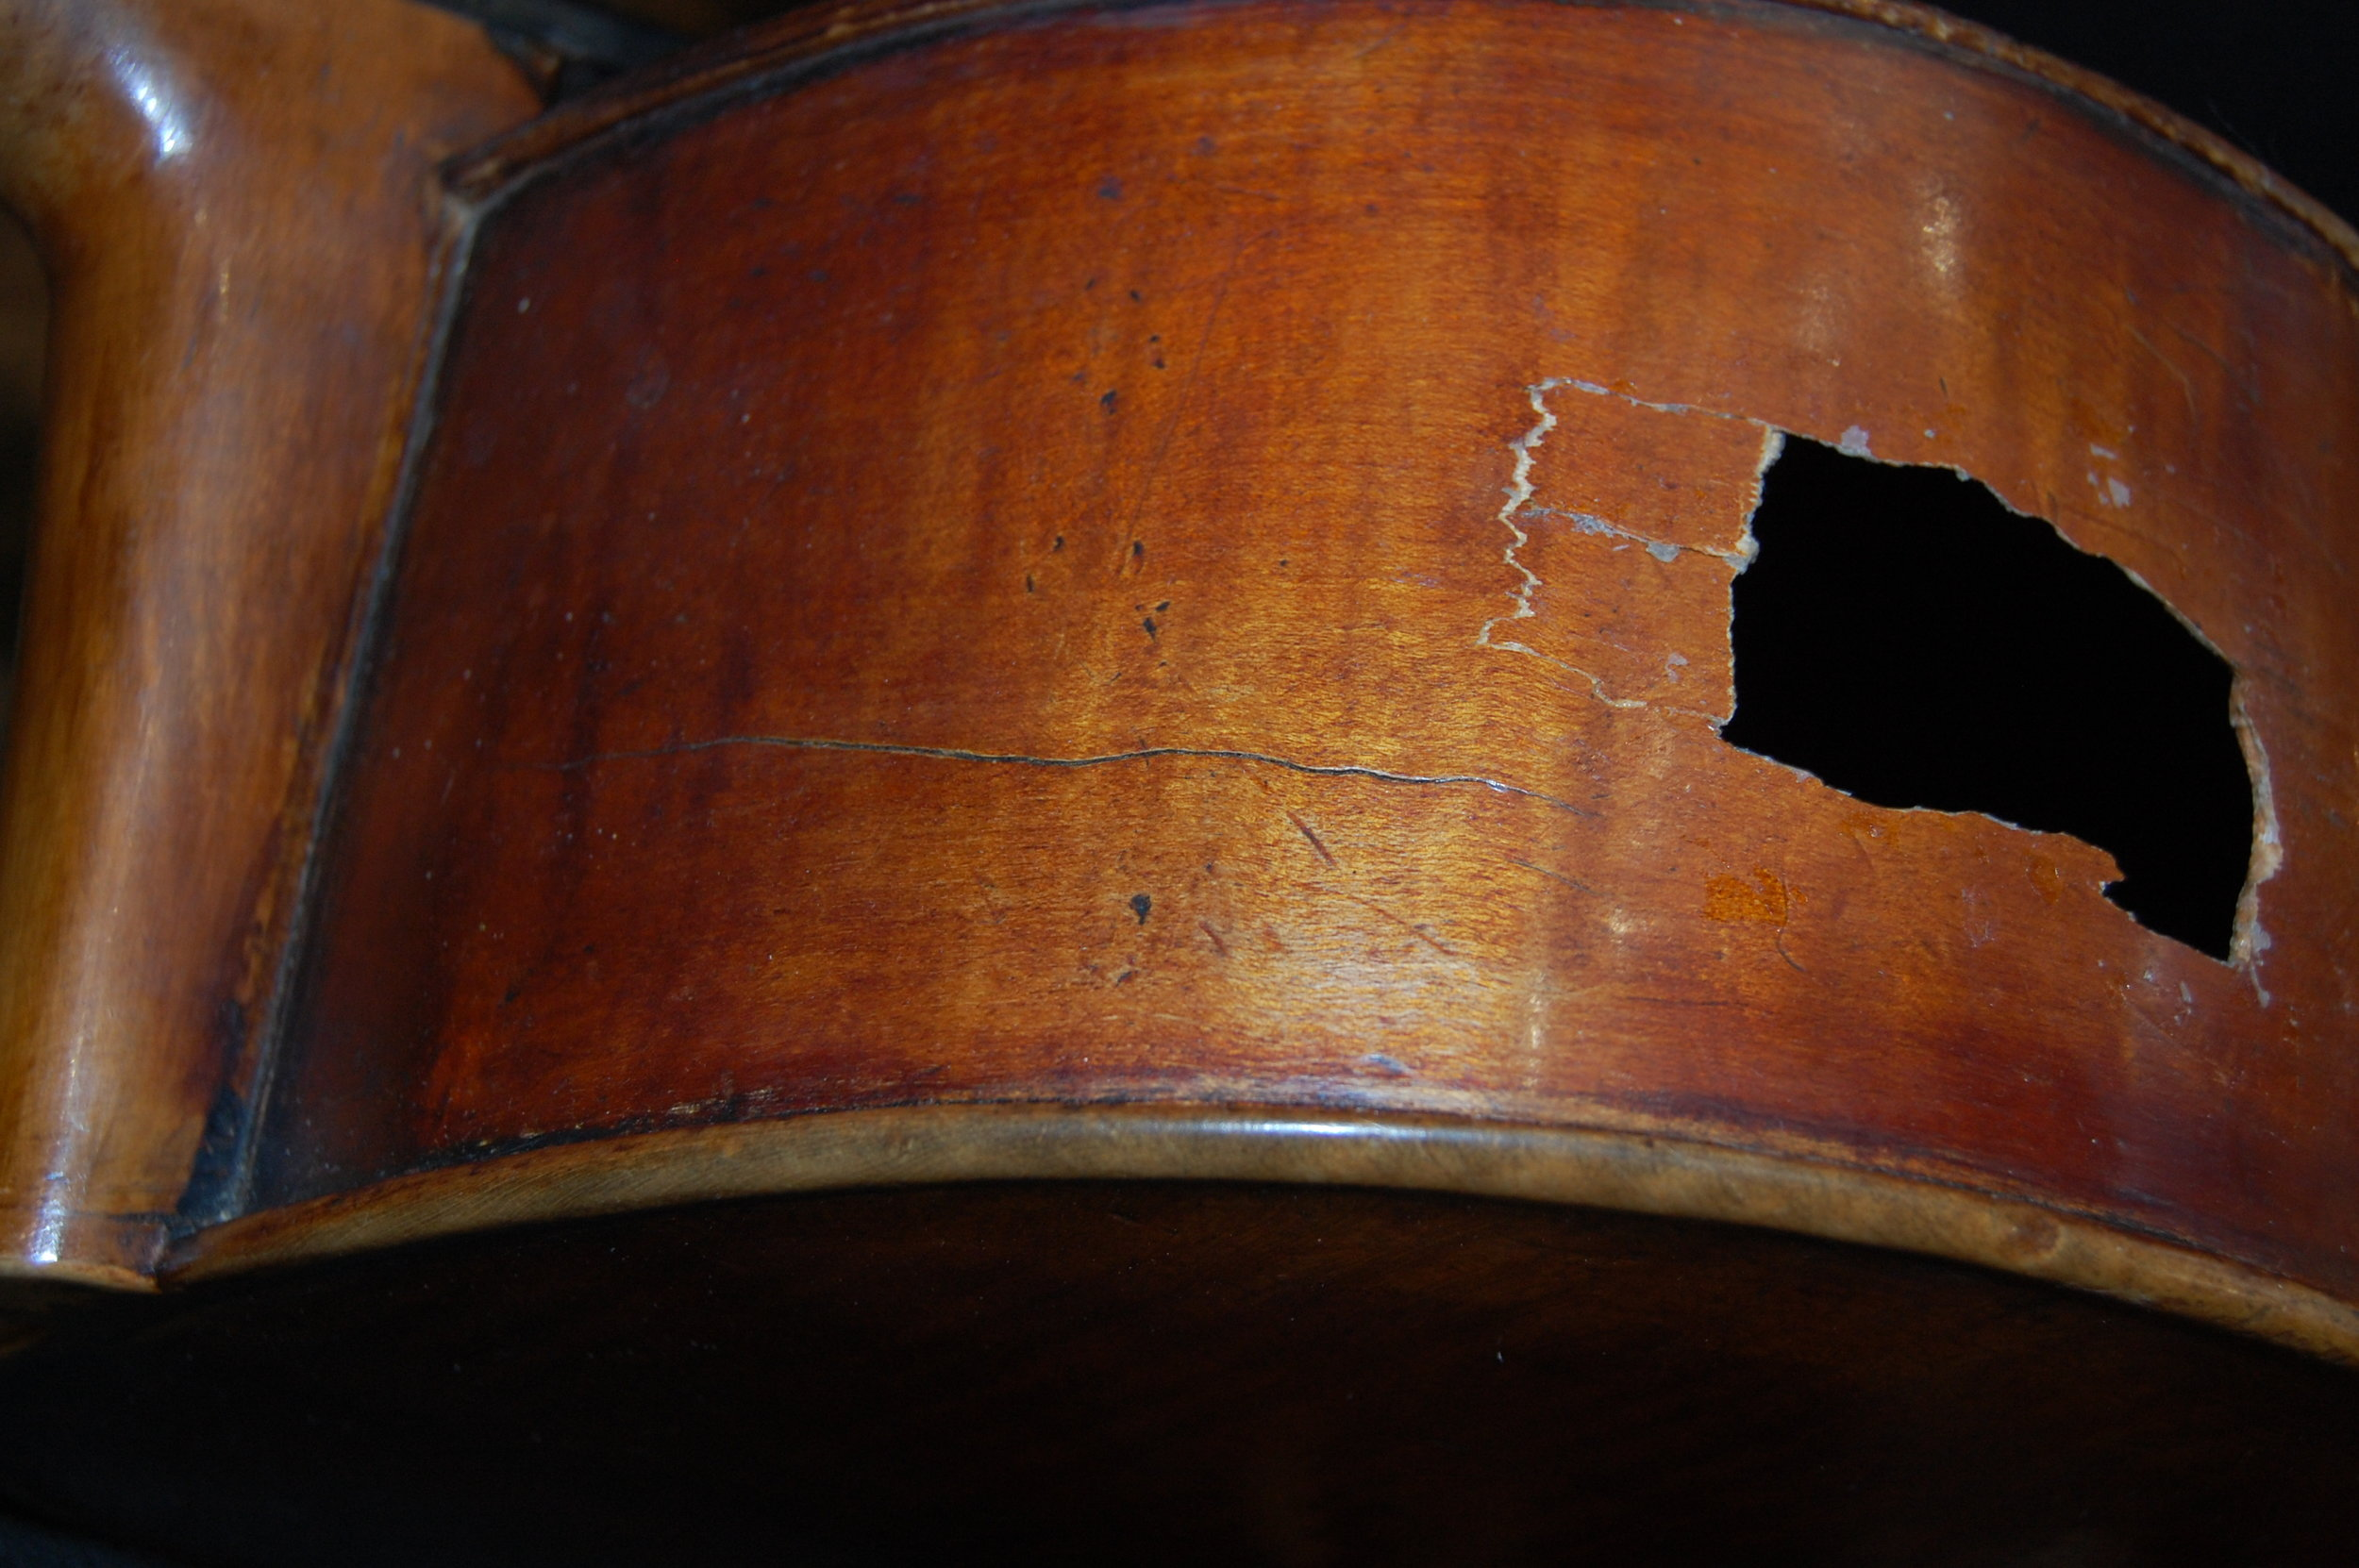 As Jonathan removed the front of the cello, he discovered that this had previously been repaired and that the whole area was plastered with modern synthetic glue. This glue needed to be painstakingly heated up and picked off until it was back to bare wood as nothing will stick to the synthetic glue and it is not water soluble.